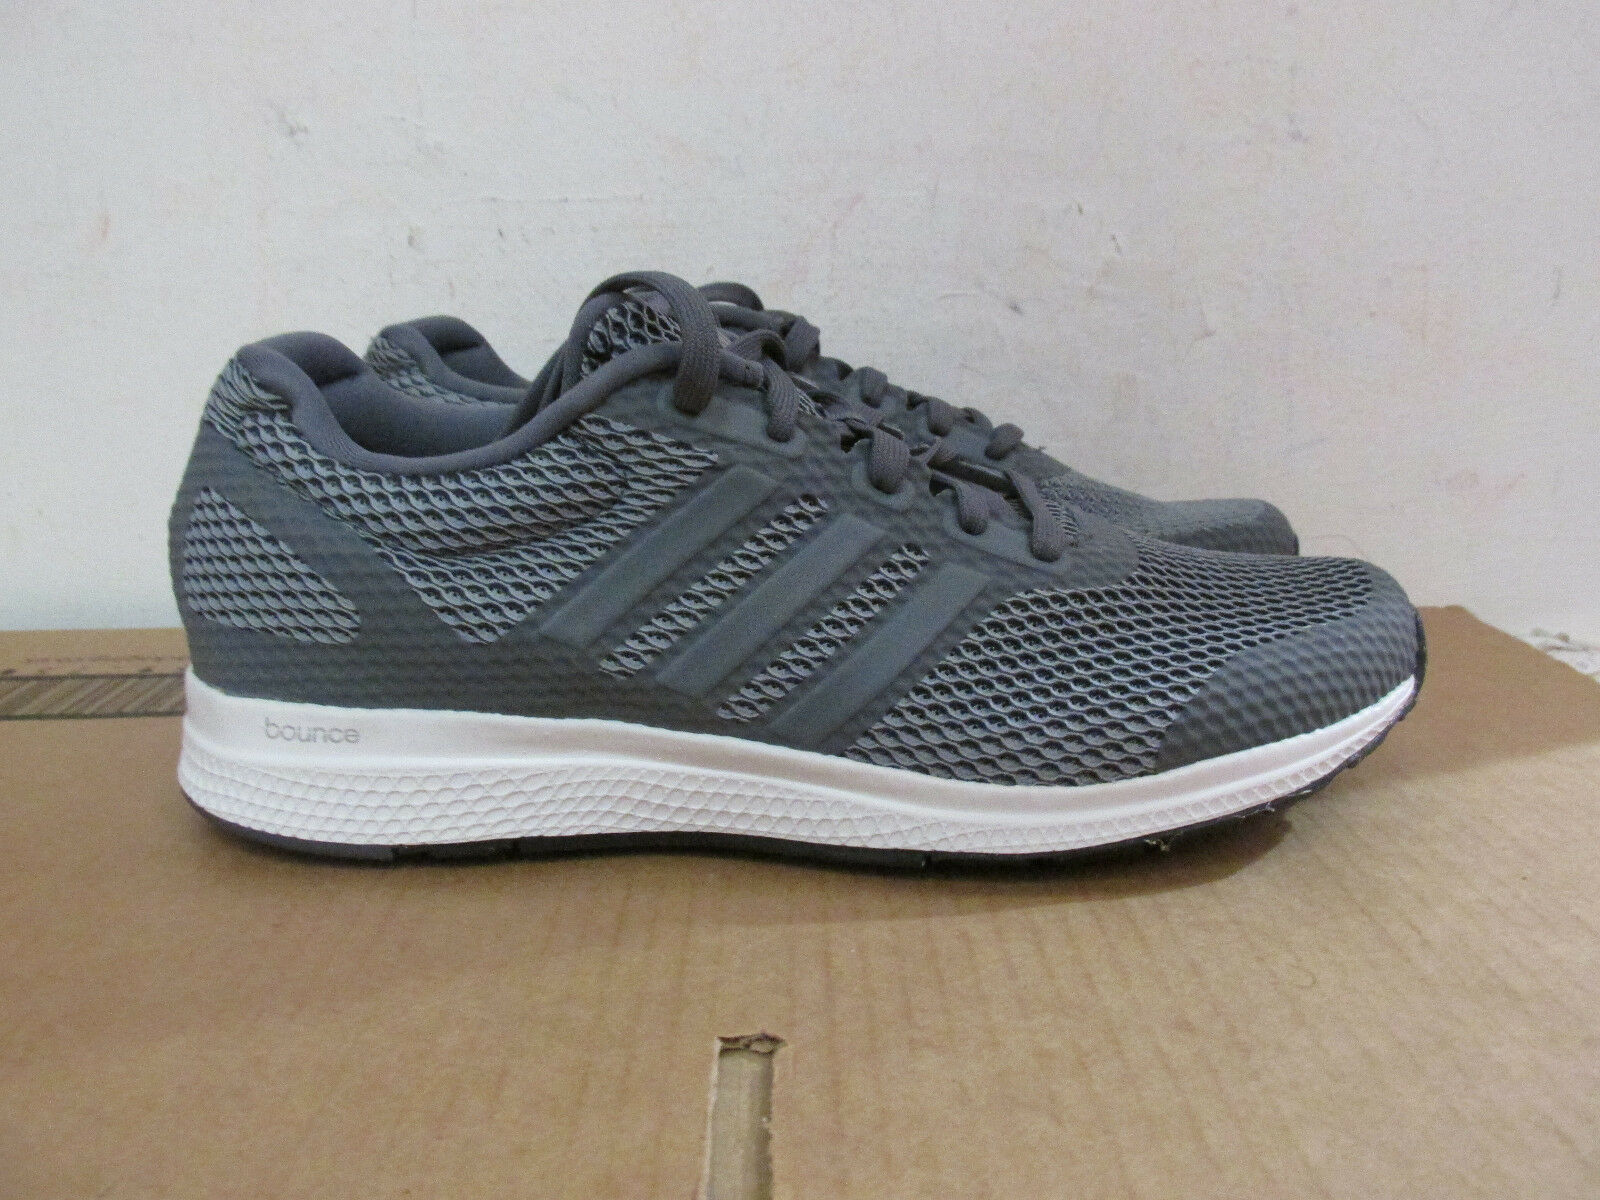 Adidas Mana Bounce b42432 Mens Trainers Baskets Sample